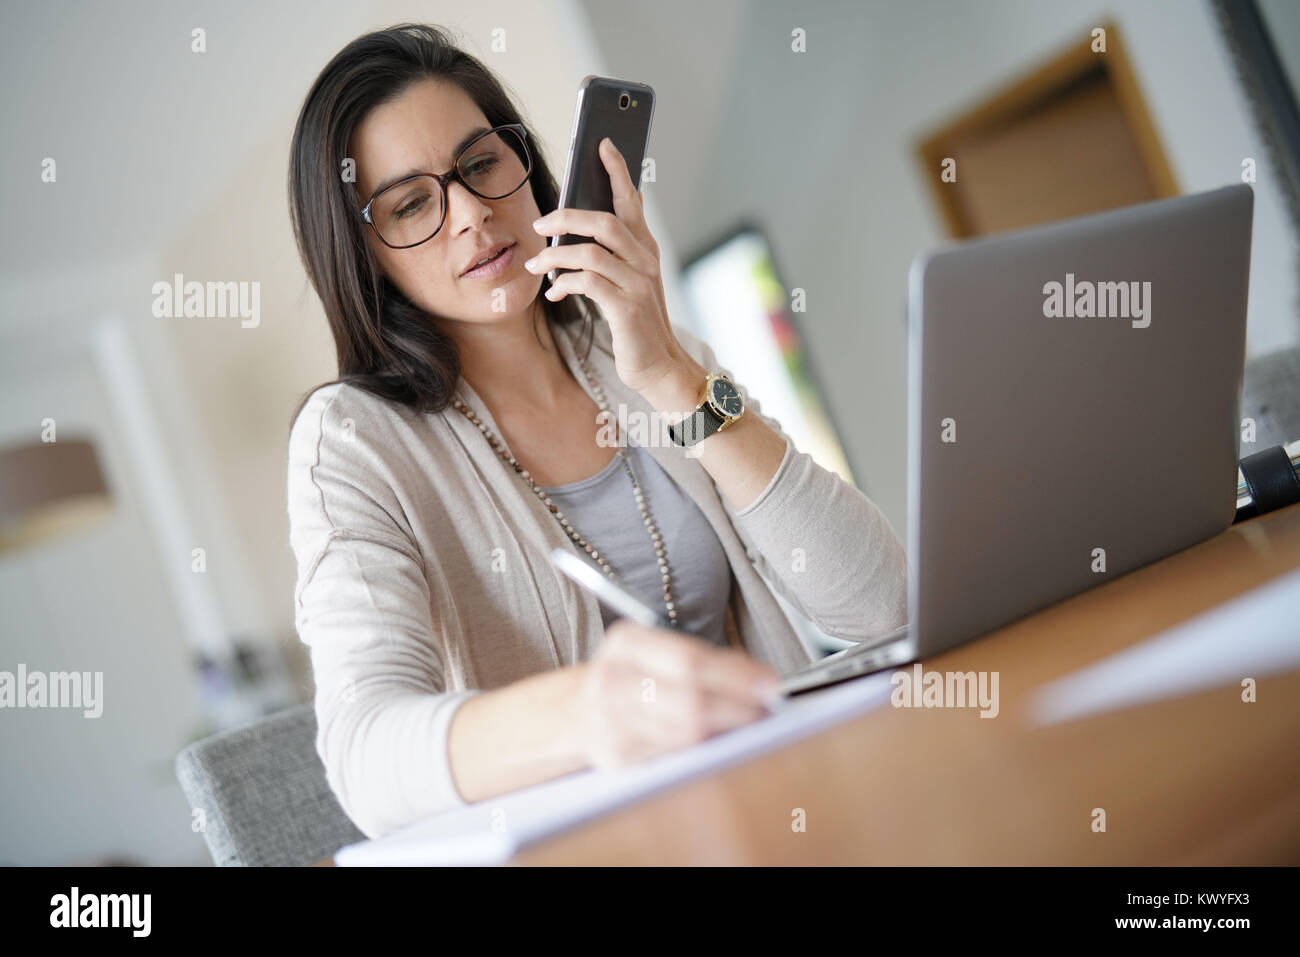 Businesswoman working from home talking on phone - Stock Image